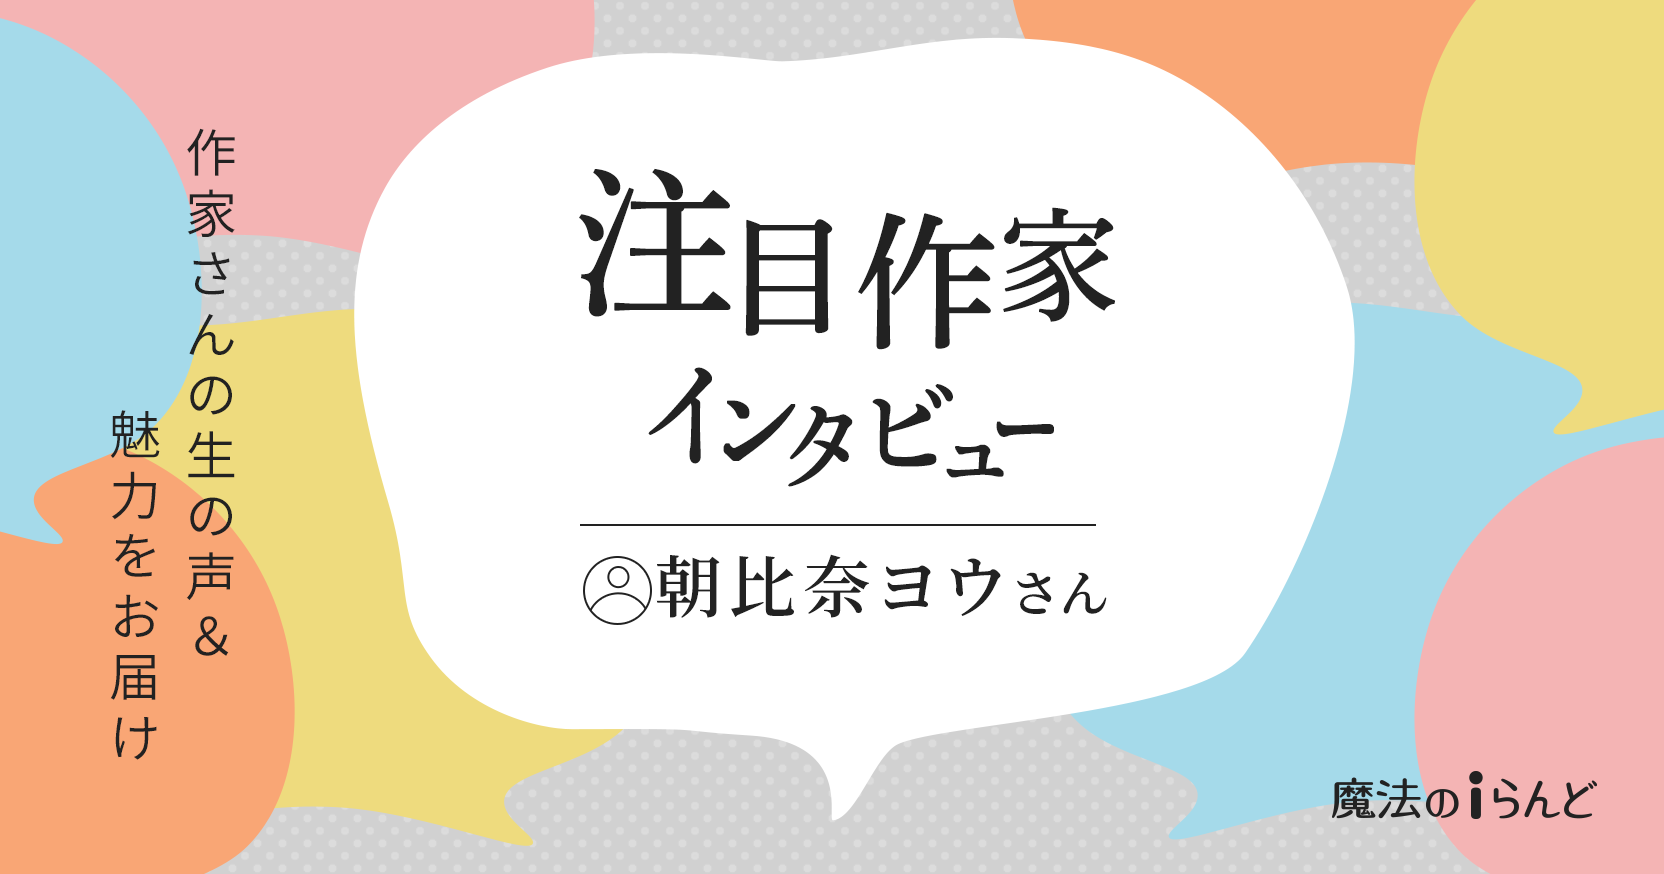 https://storage.googleapis.com/blog-info/entry/2020/05/interview_ogp_asahina%20you0527.png